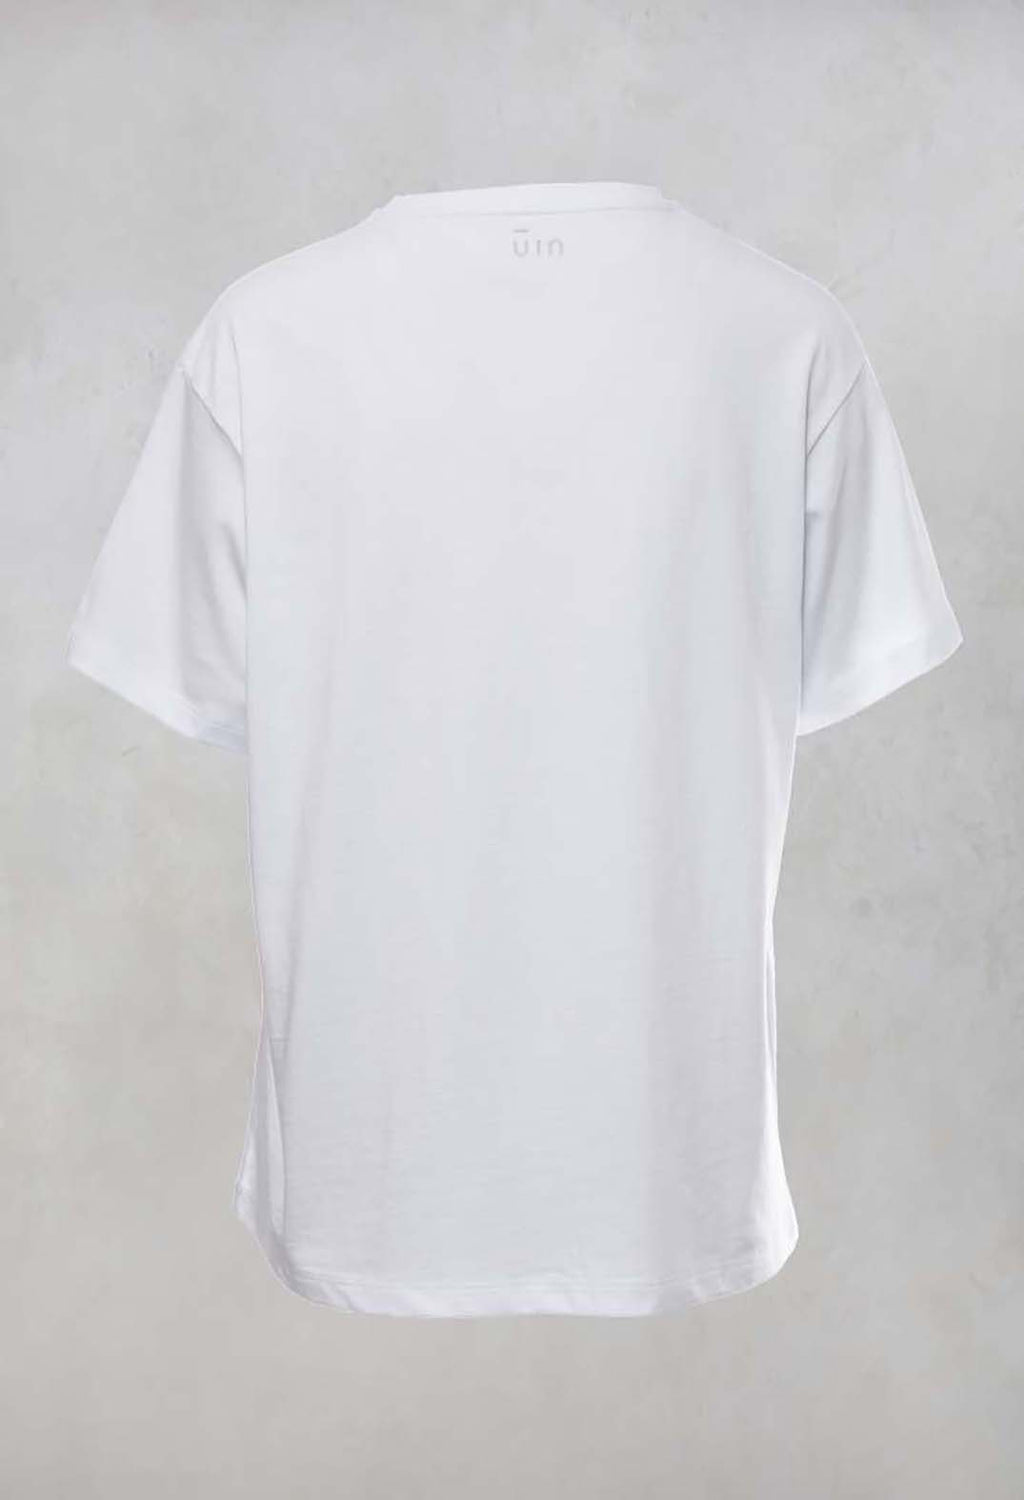 Applique T Shirt in White